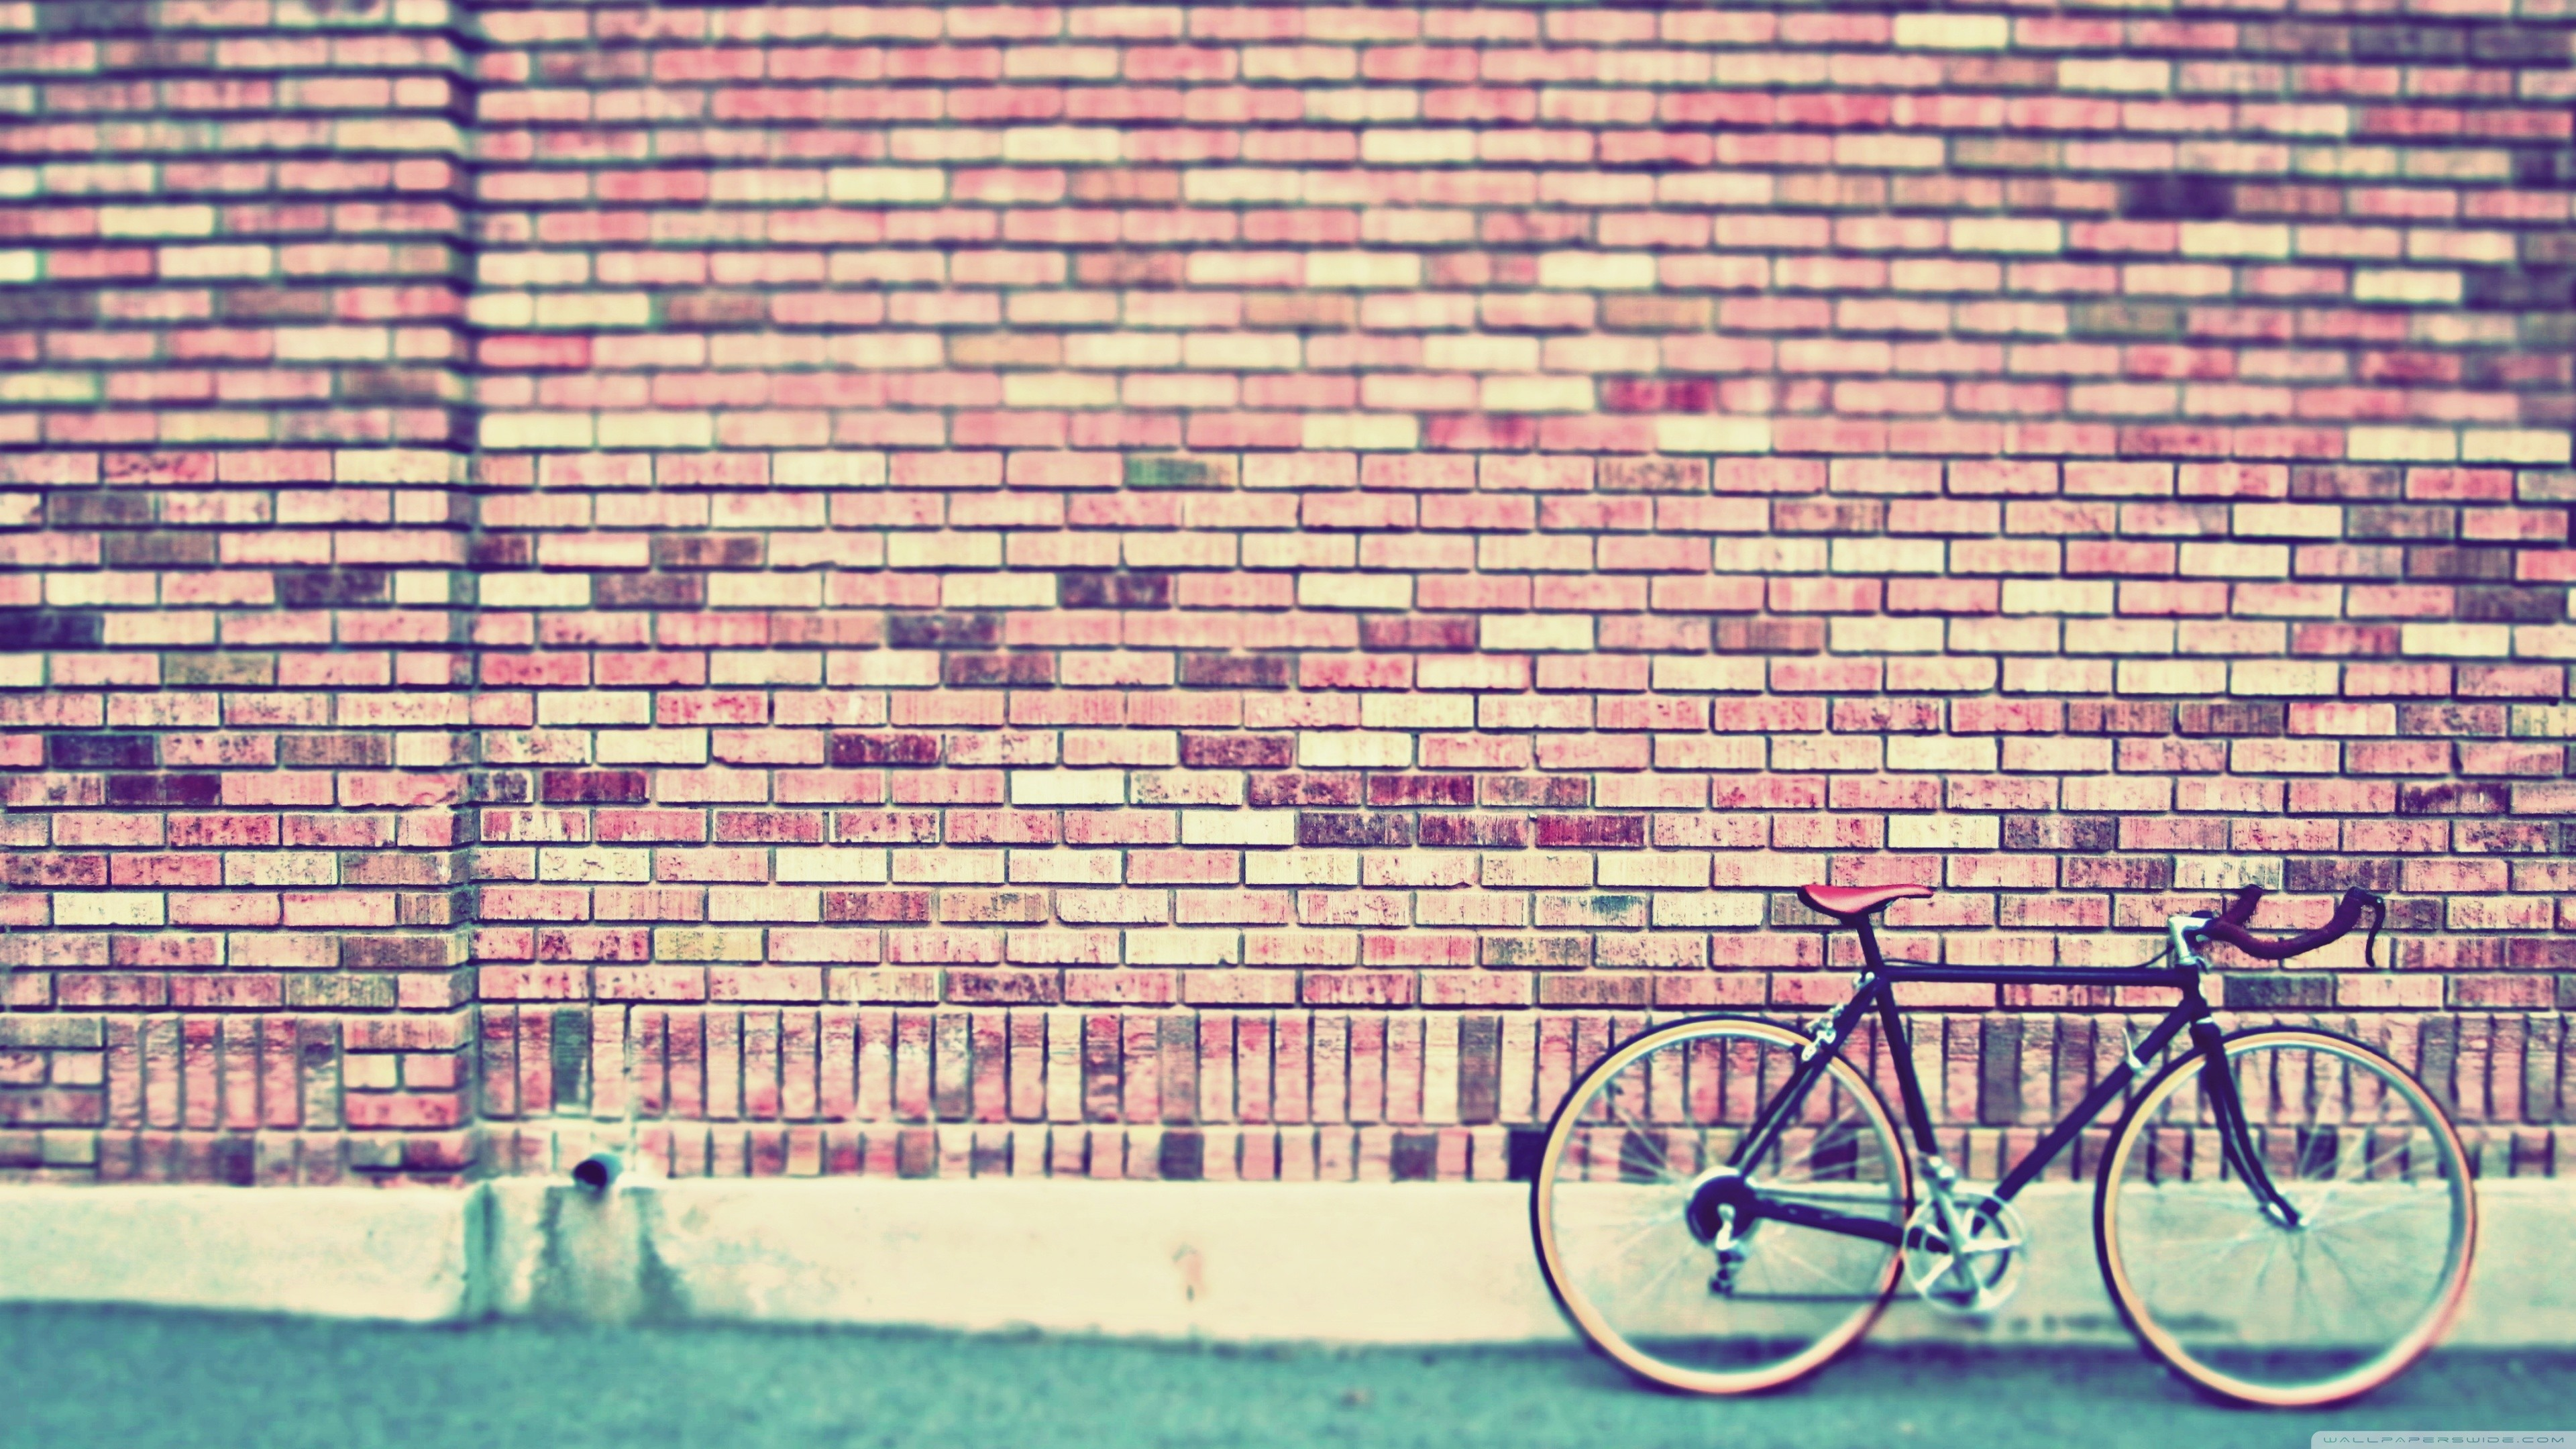 background tumblr hipster images pictures becuo